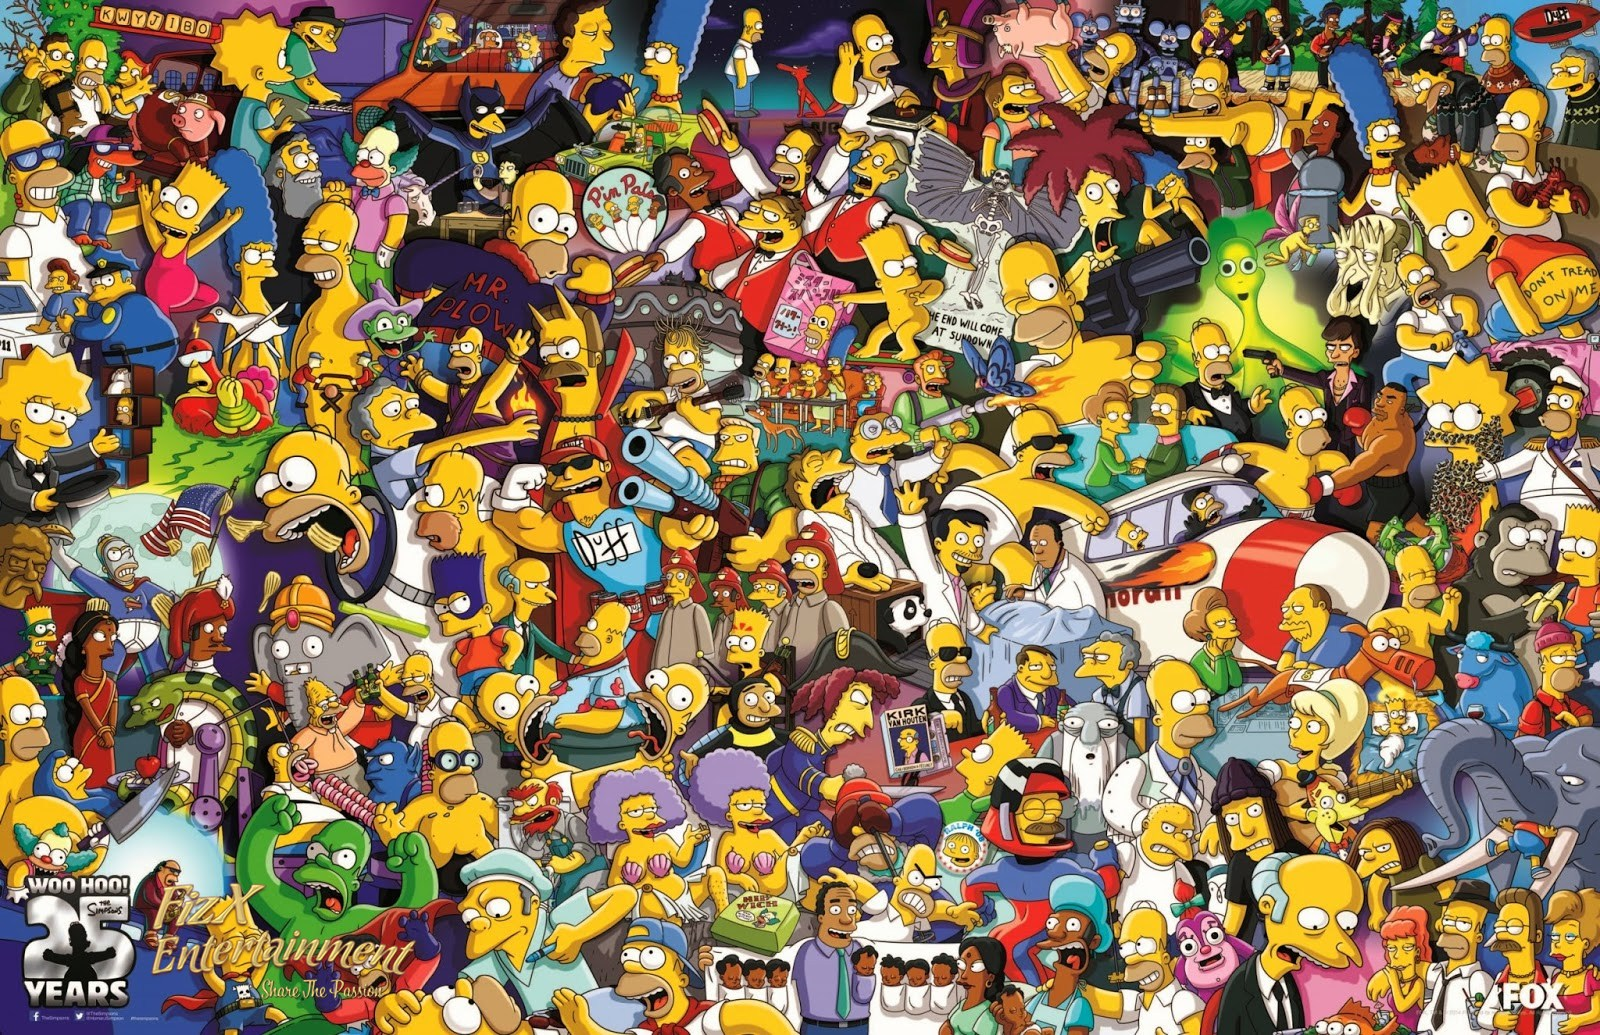 25th anniversary the simpsons